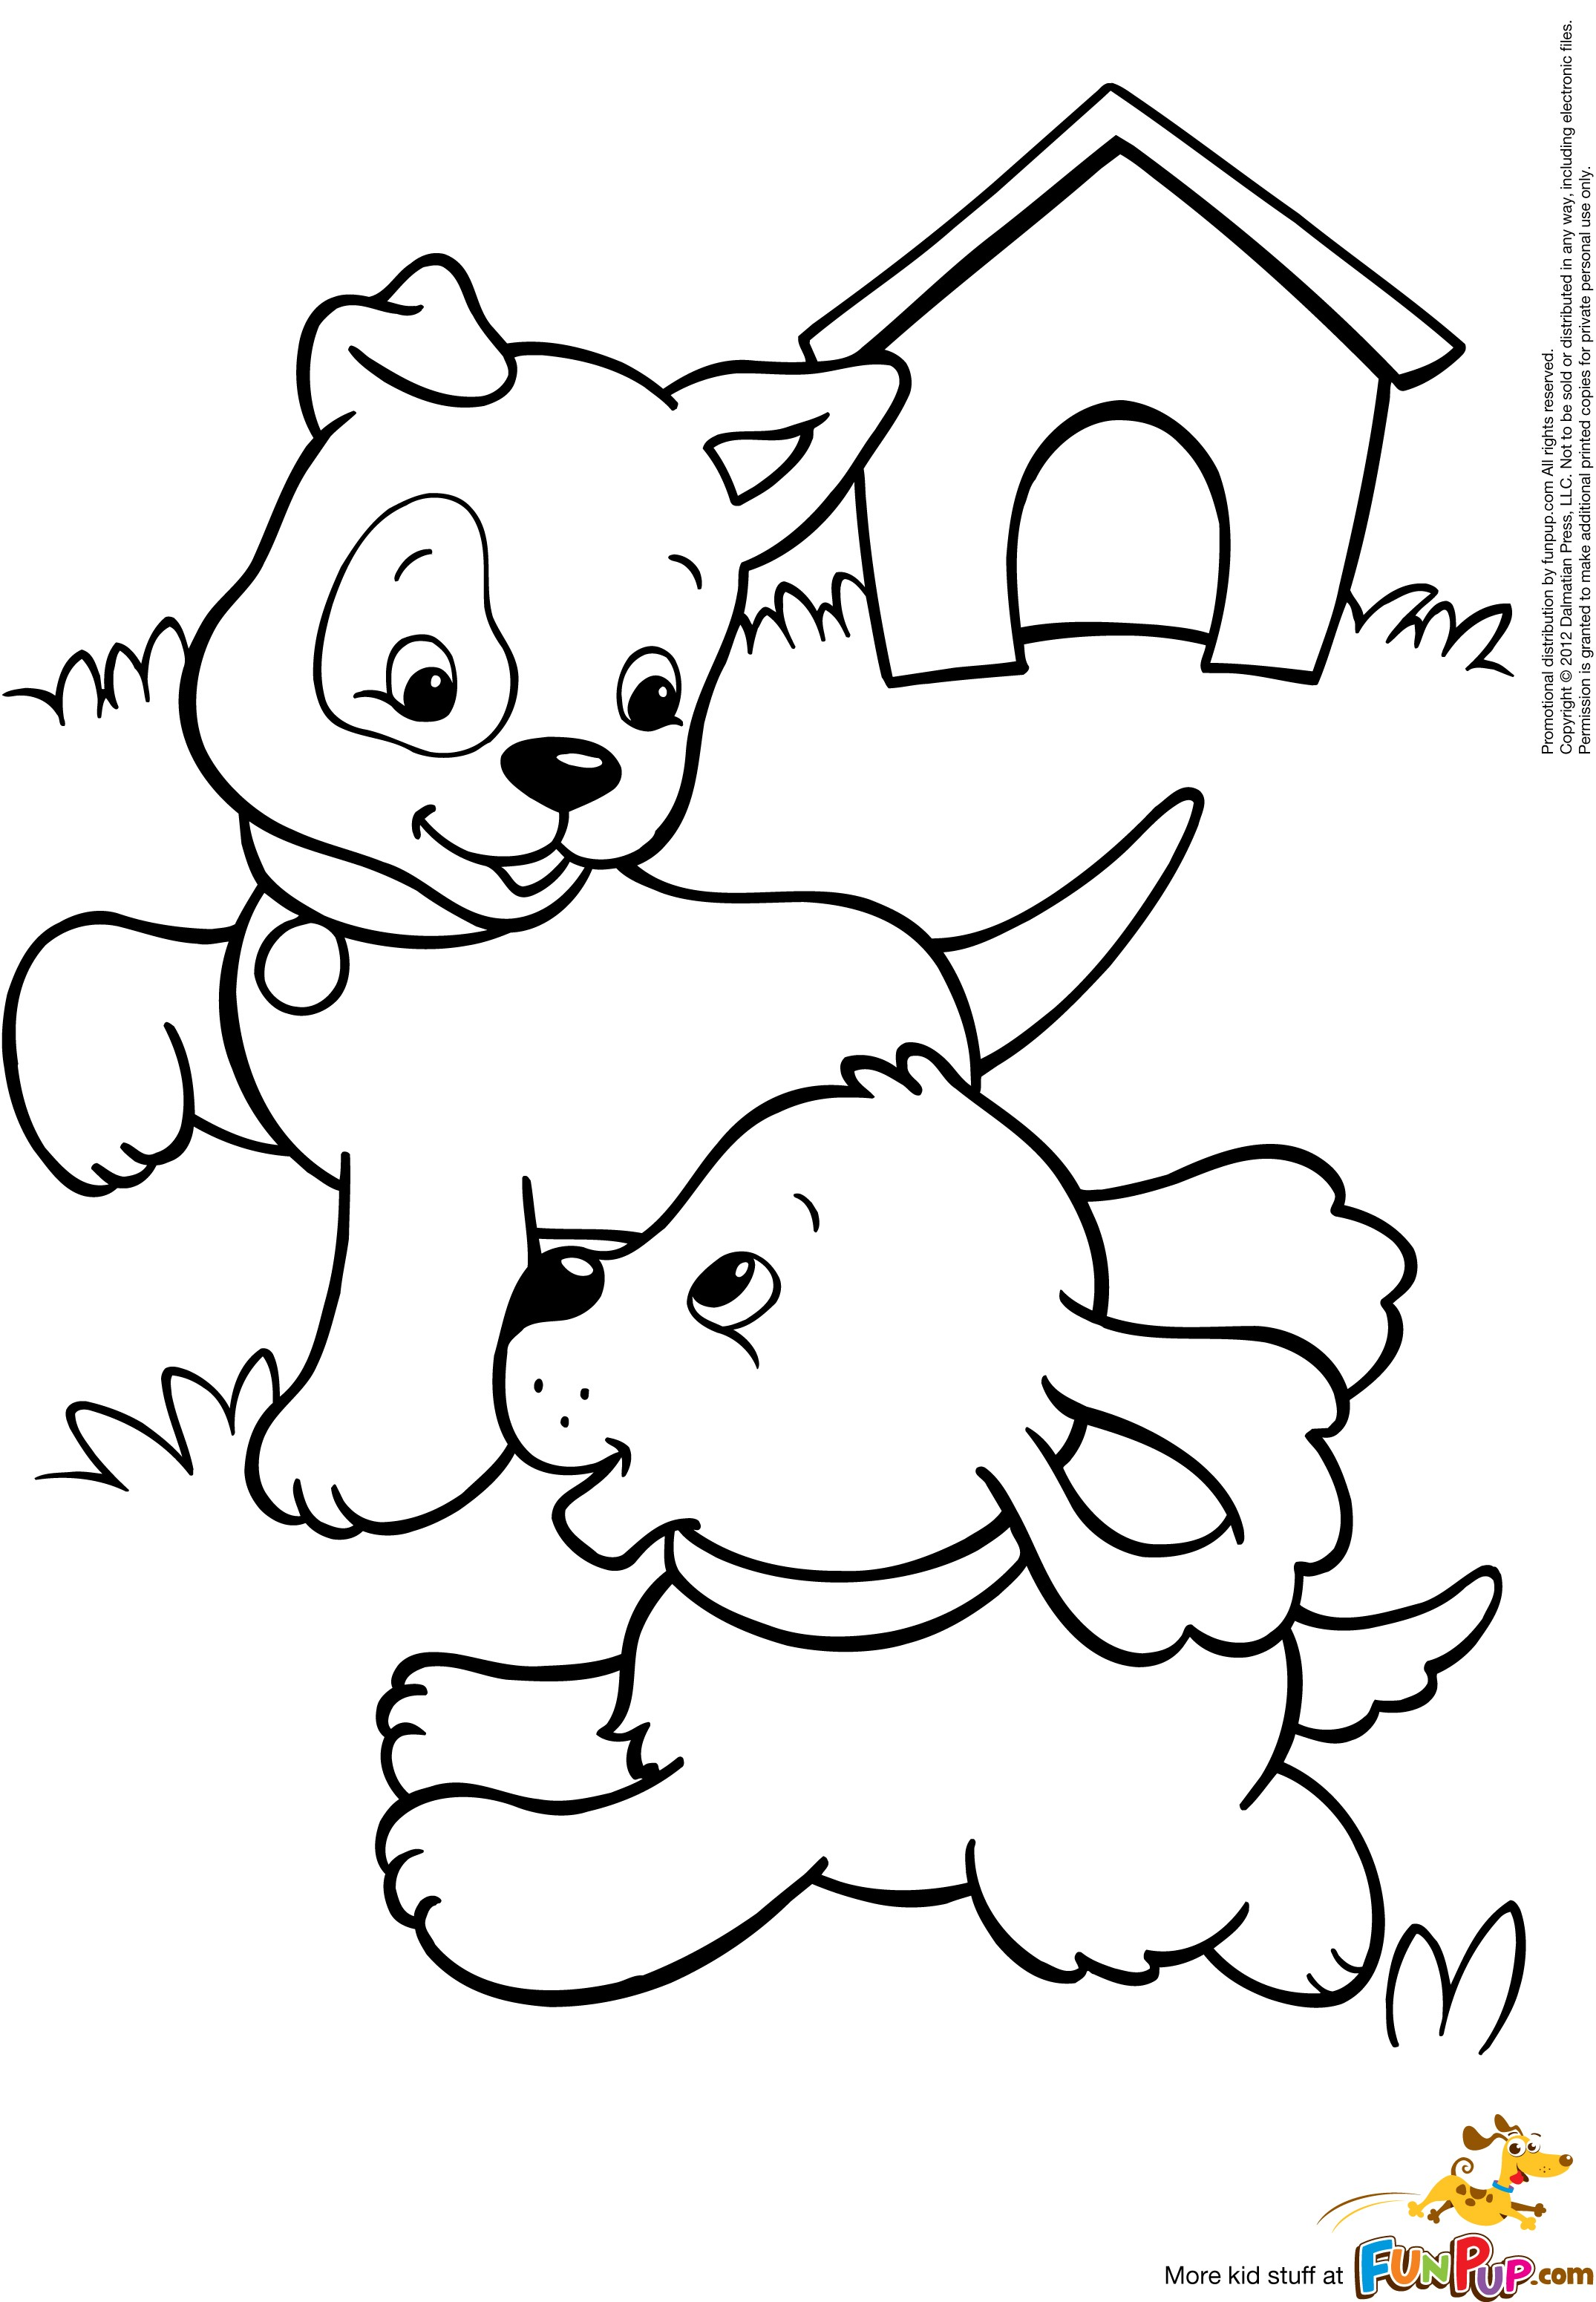 printable realistic dog coloring pages dog breed coloring pages coloring pages realistic dog printable